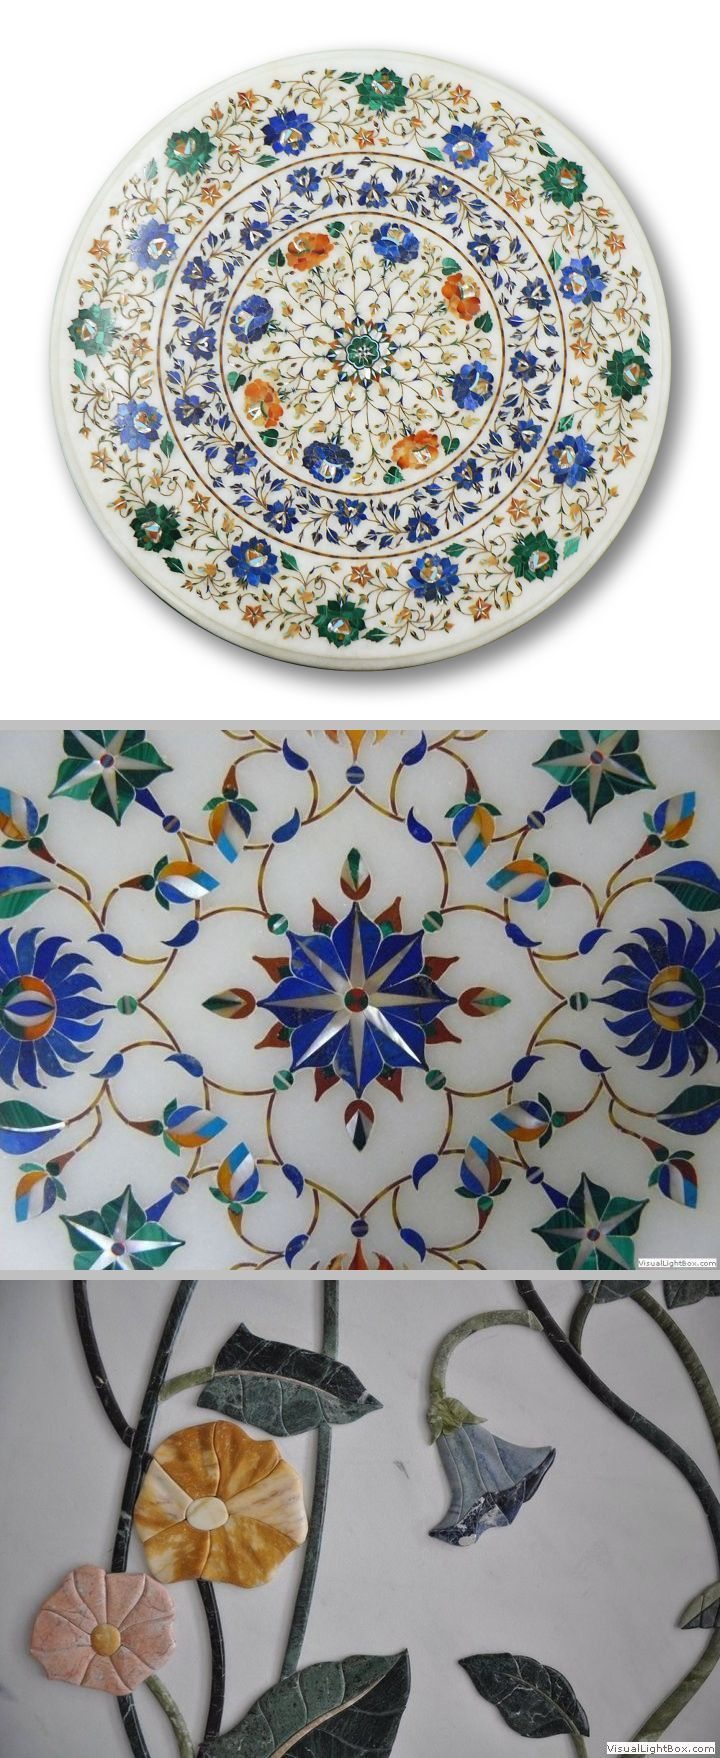 """Pietra Dura, a term derived from the Italian language meaning """"hard stone,"""" is the technique of engraving artistic designs in marble and filling the troughs with finely cut precious / semi-precious stones.  Developed in Rome, pietra dura traveled to Persia and then to India.  The Taj Mahal of India & the Basilica of San Lorenzo in Florence are enduring legacies of this exquisite art form.  #heritage #culture"""